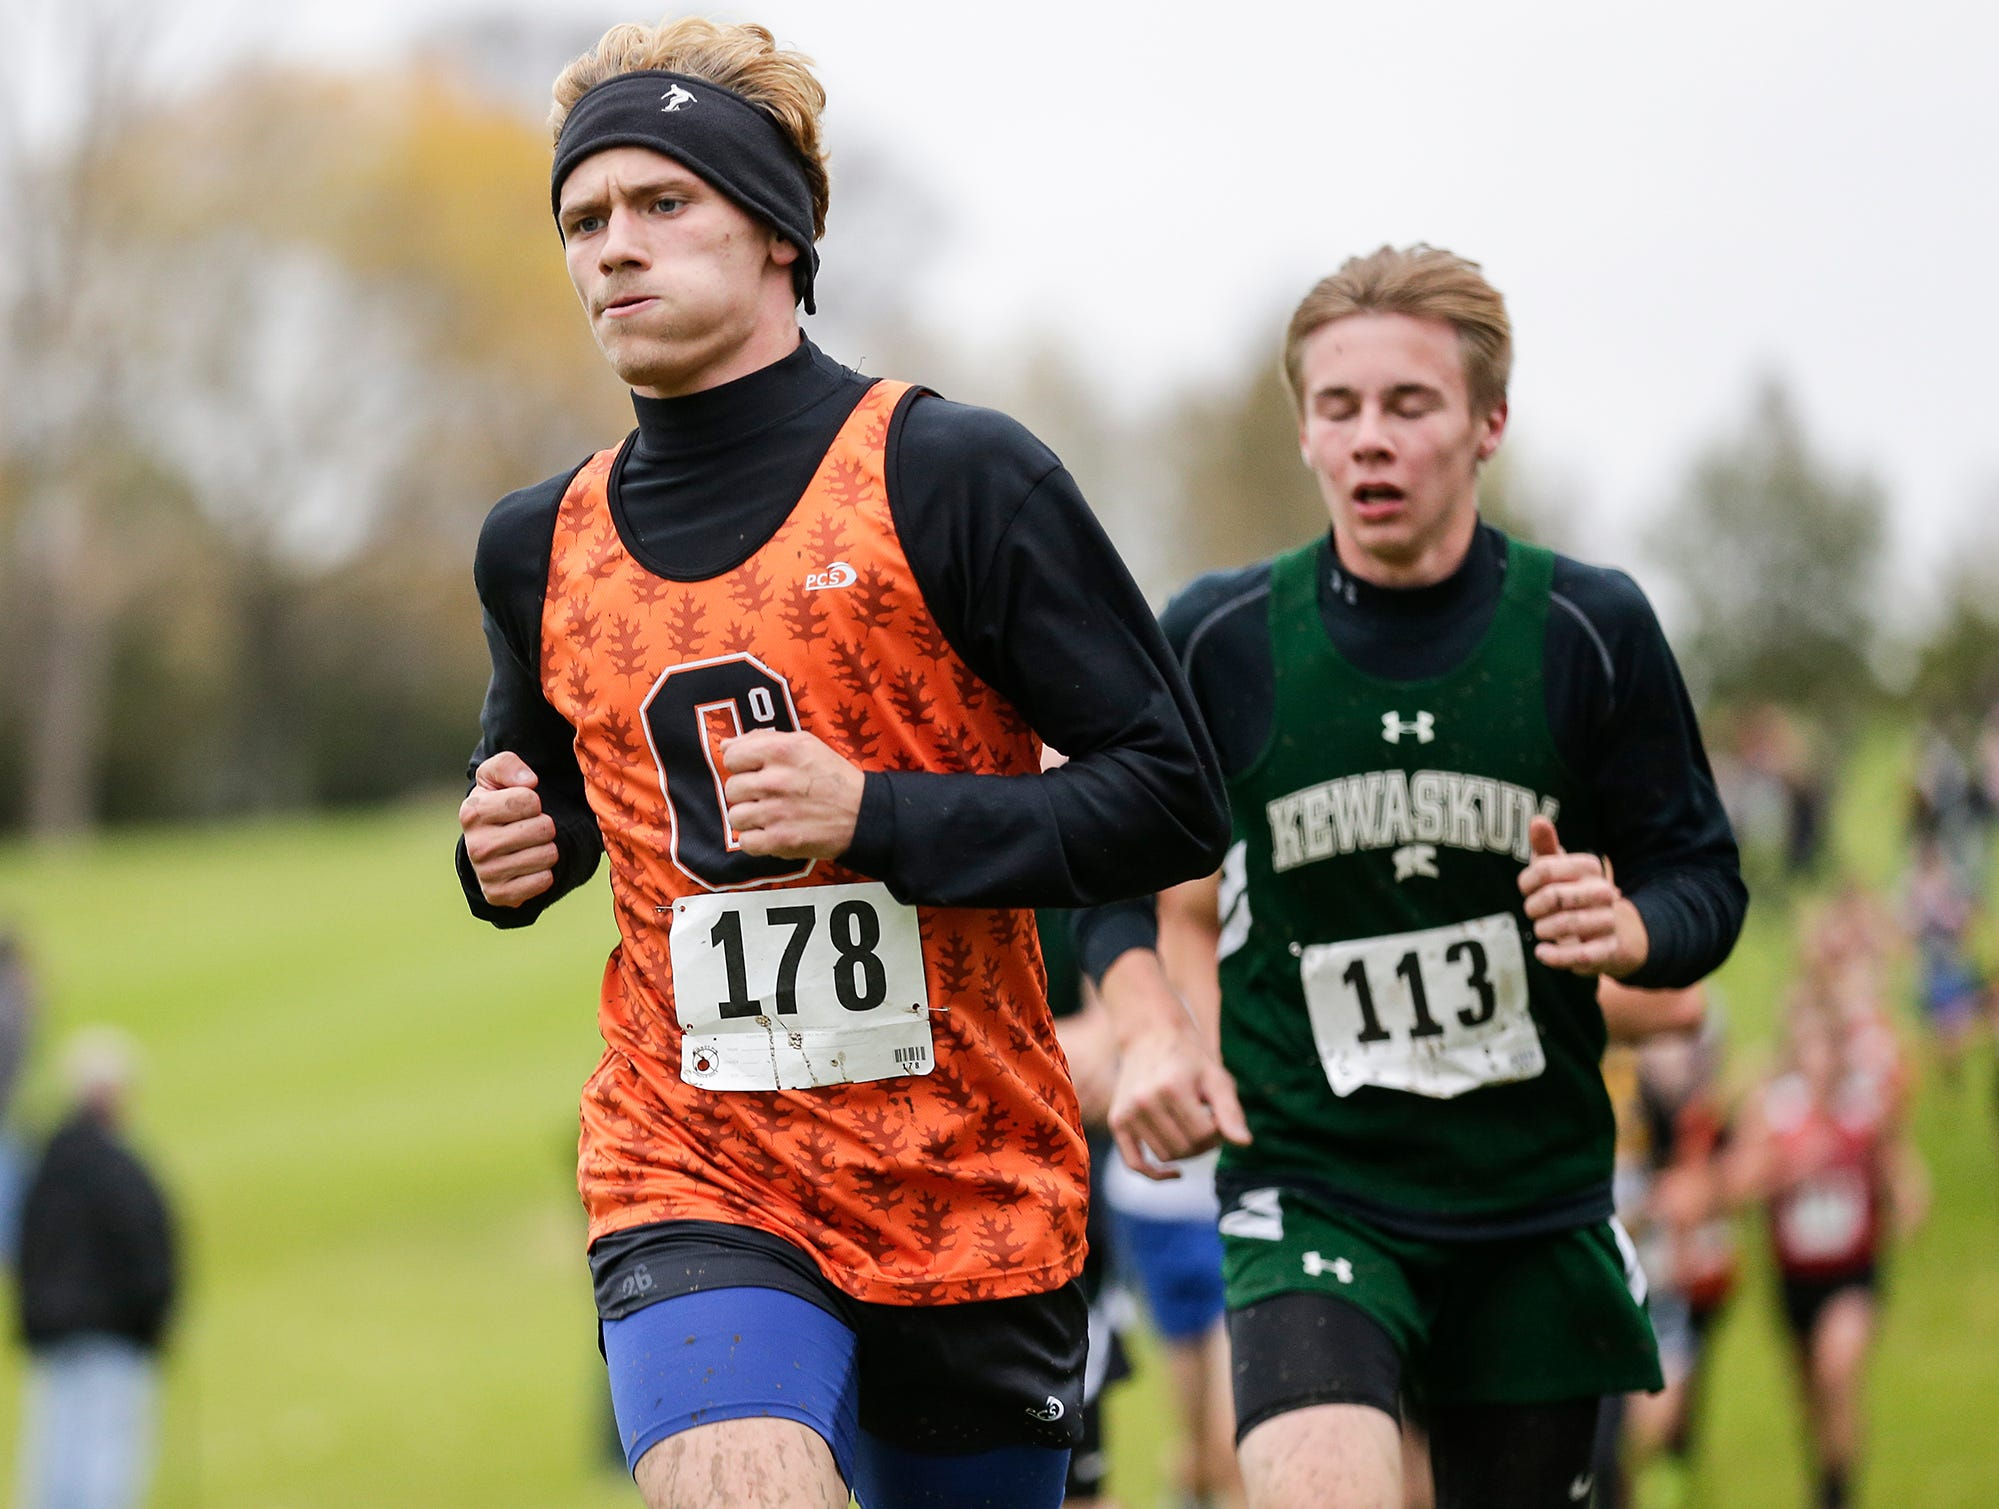 North Fond du Lac High School's Dalton Fritch runs in the WIAA Division two Mayville sectional cross country meet at the Mayville golf course Friday, October 19, 2018. Doug Raflik/USA TODAY NETWORK-Wisconsin